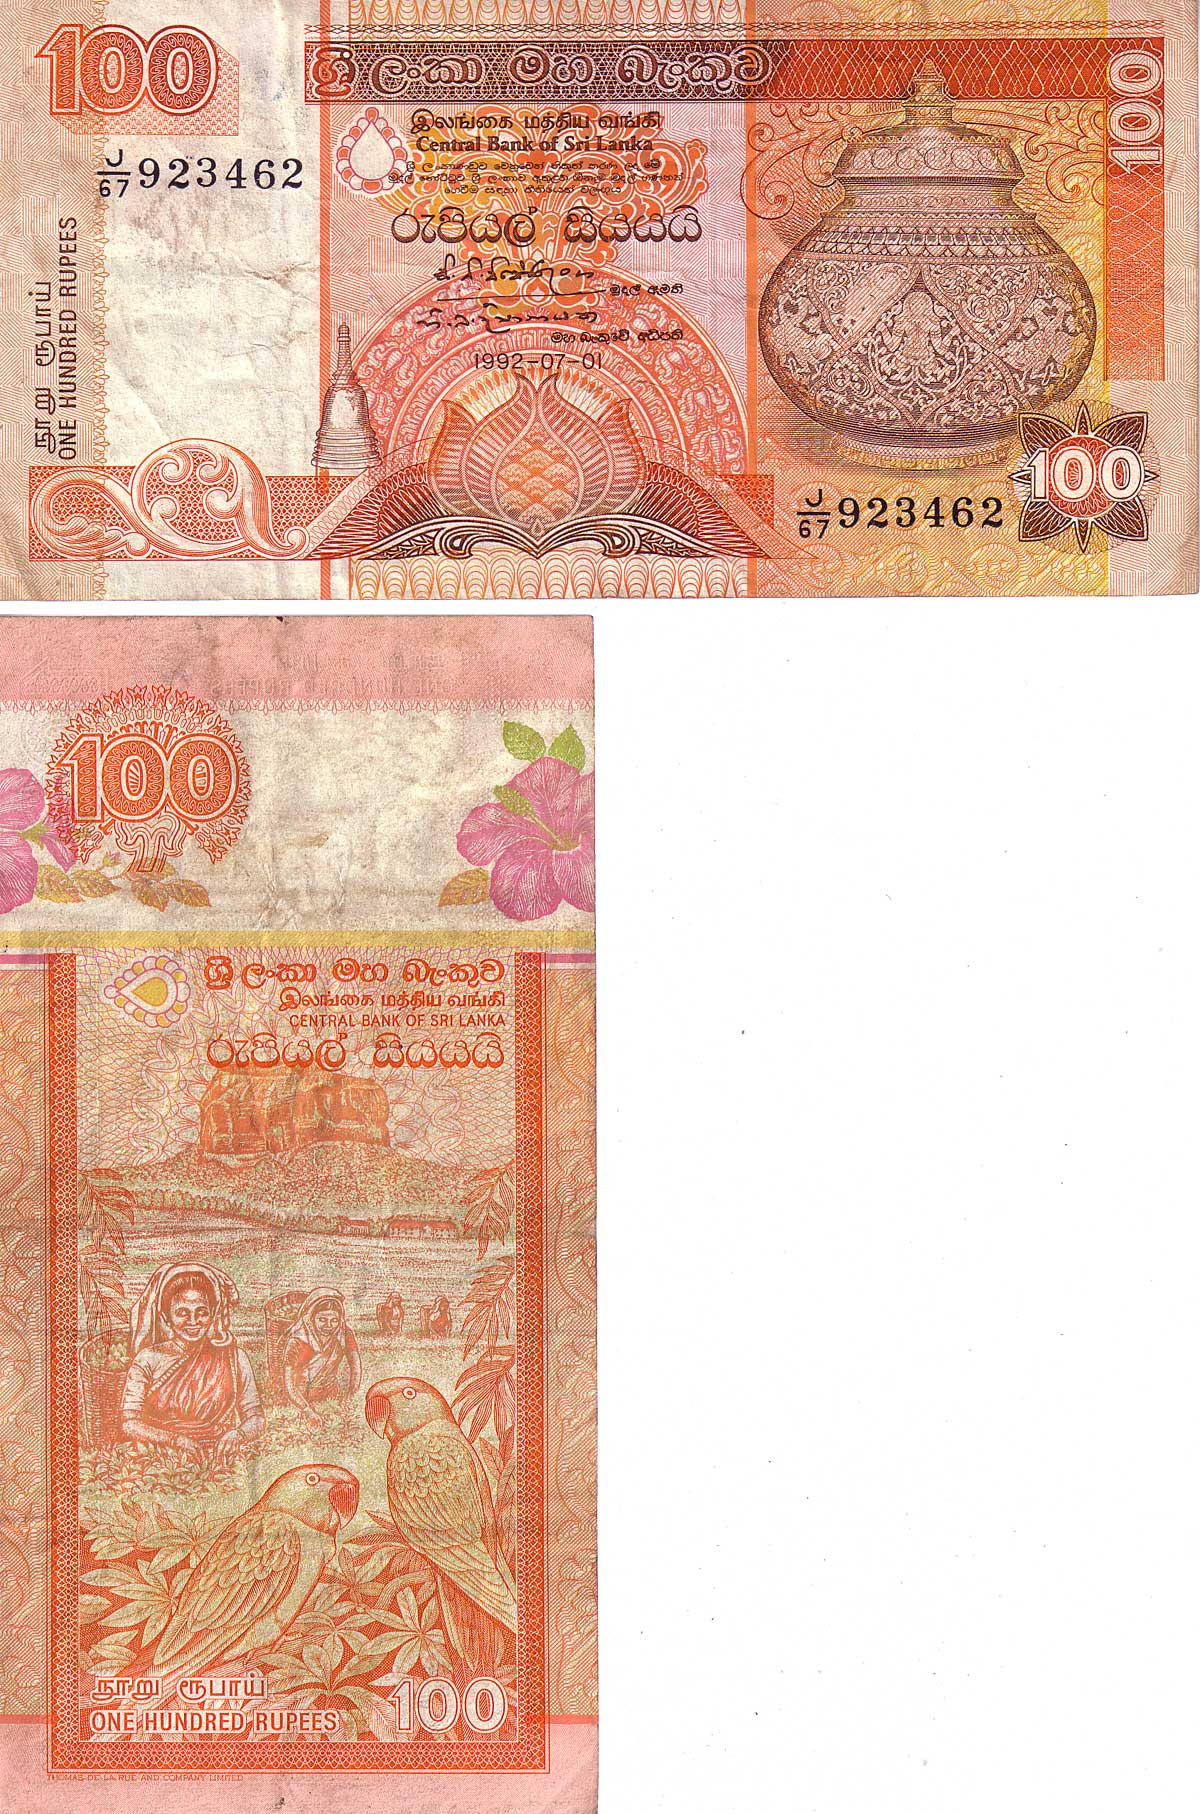 Rupee Note Size Sri Lanka 100 Rupees Note